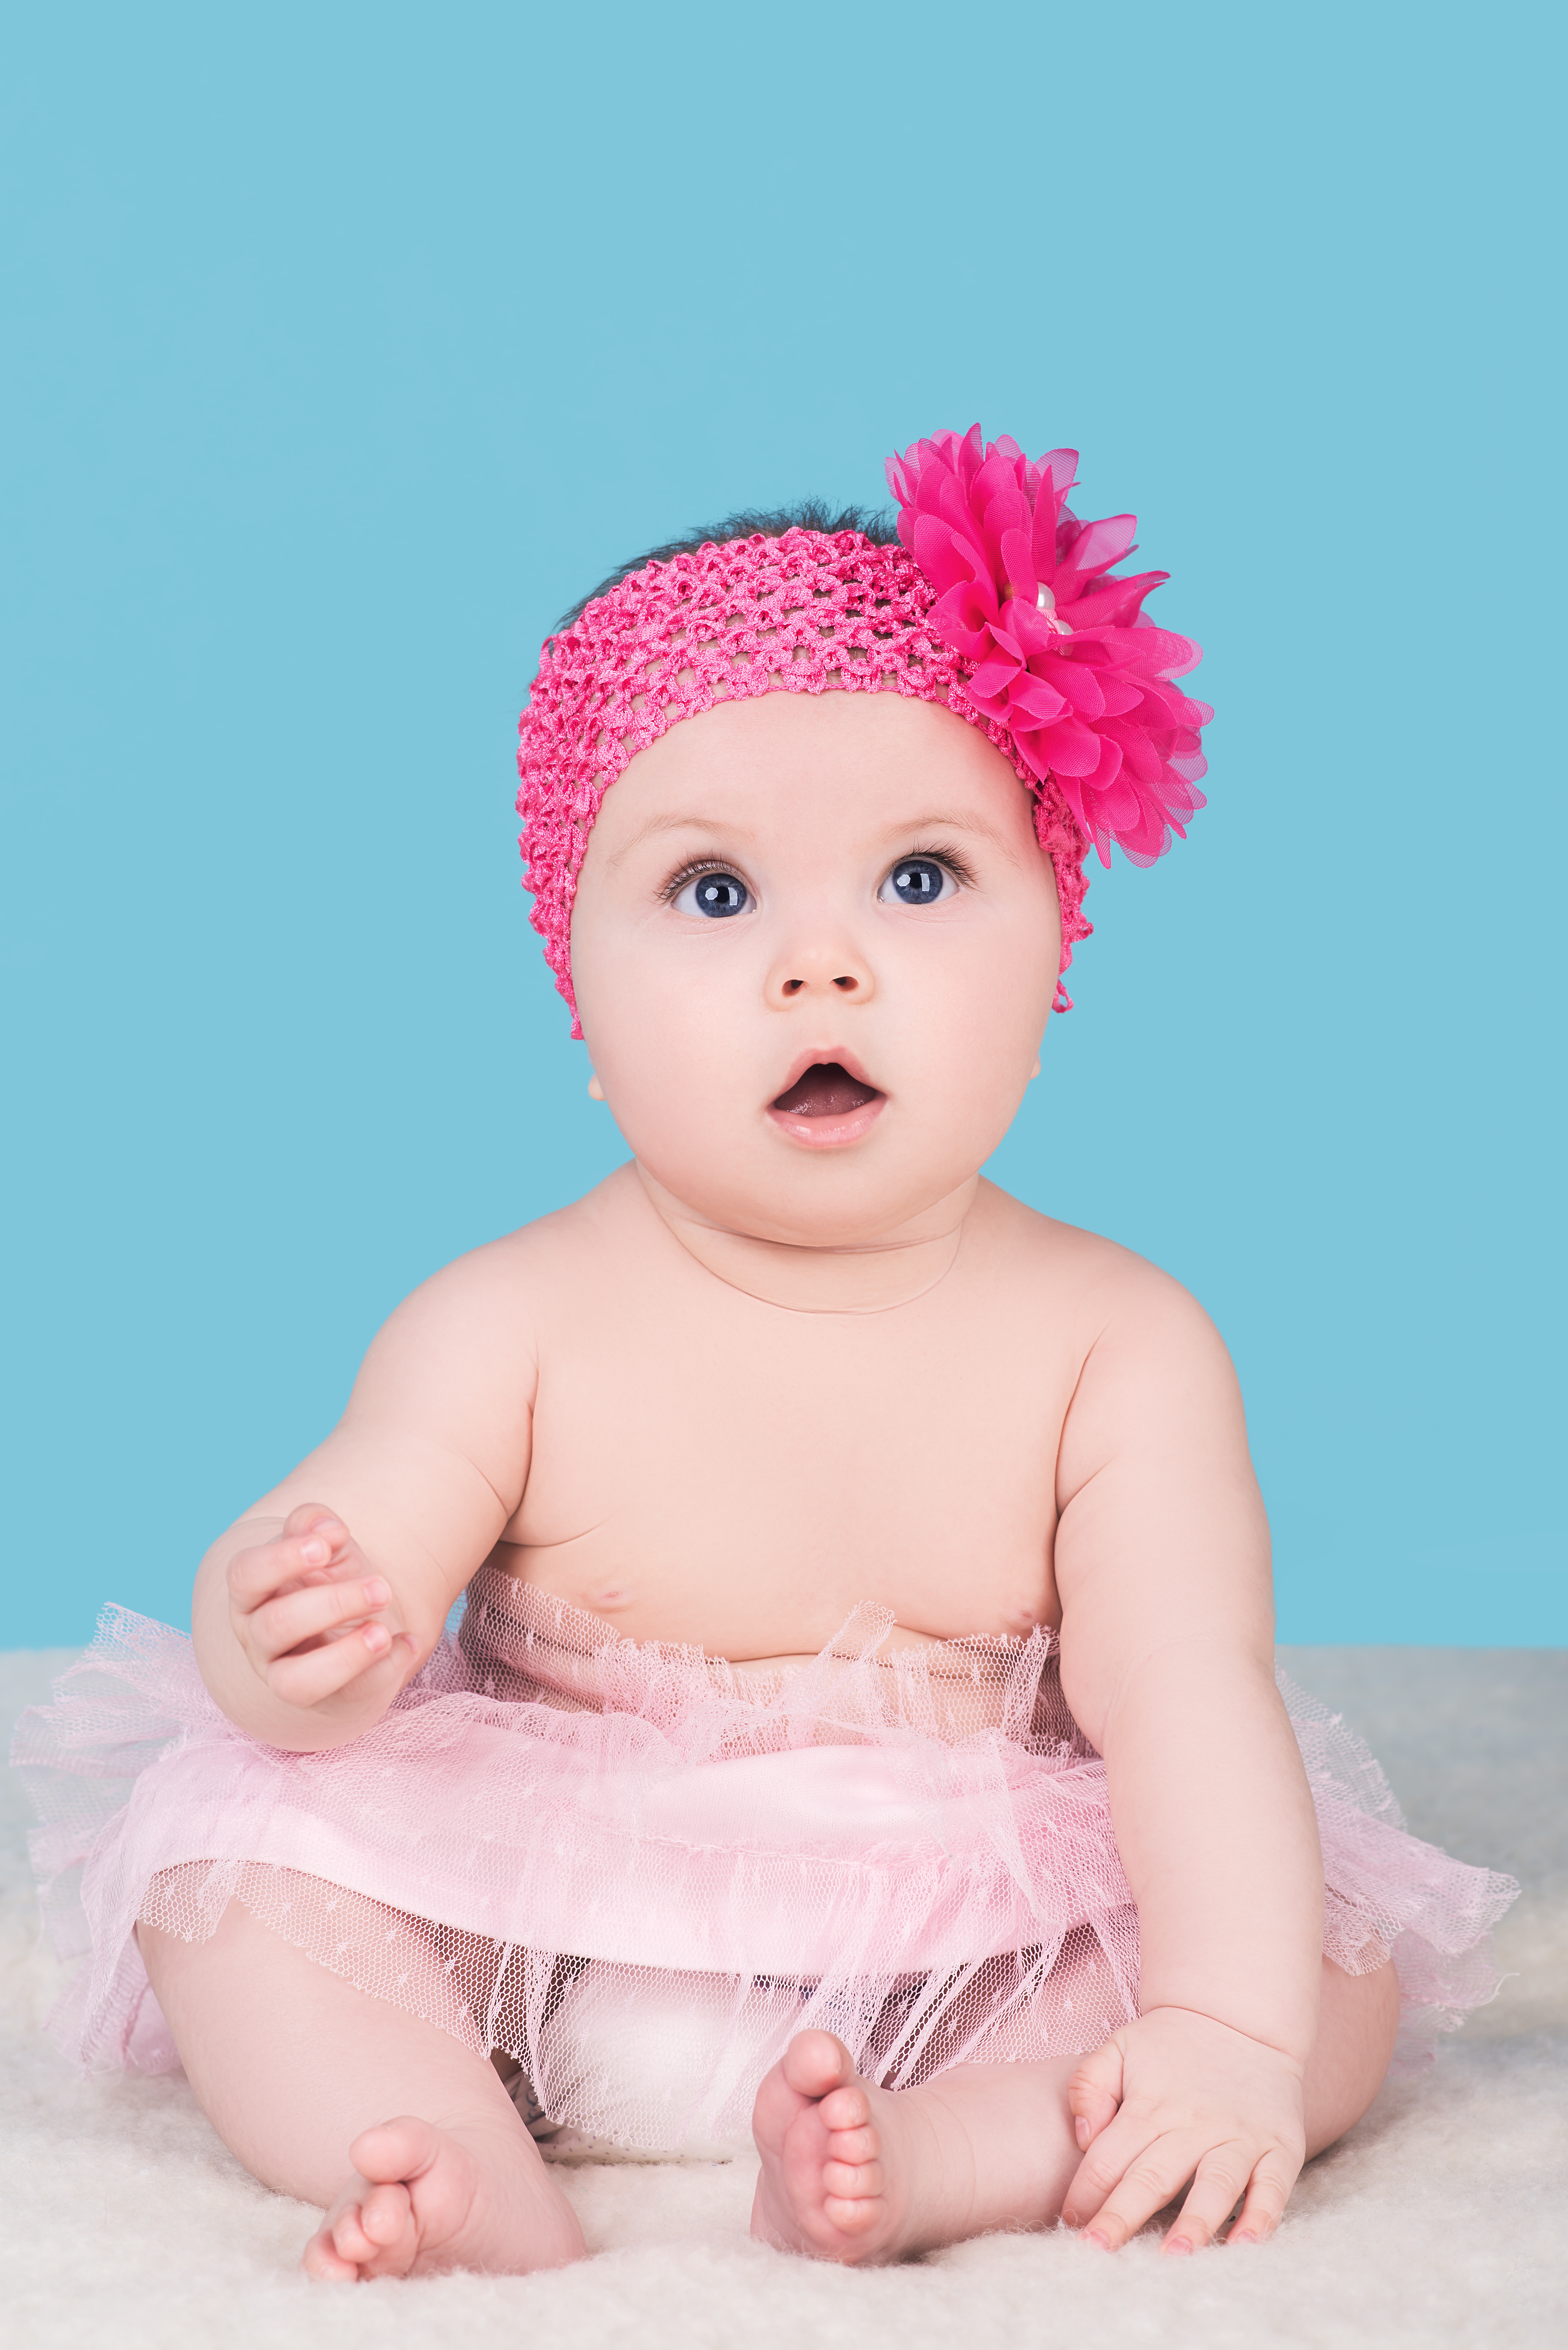 cute baby girl with pink bow flower on her head, isolated on blue. surprised child with big blue eyes look away